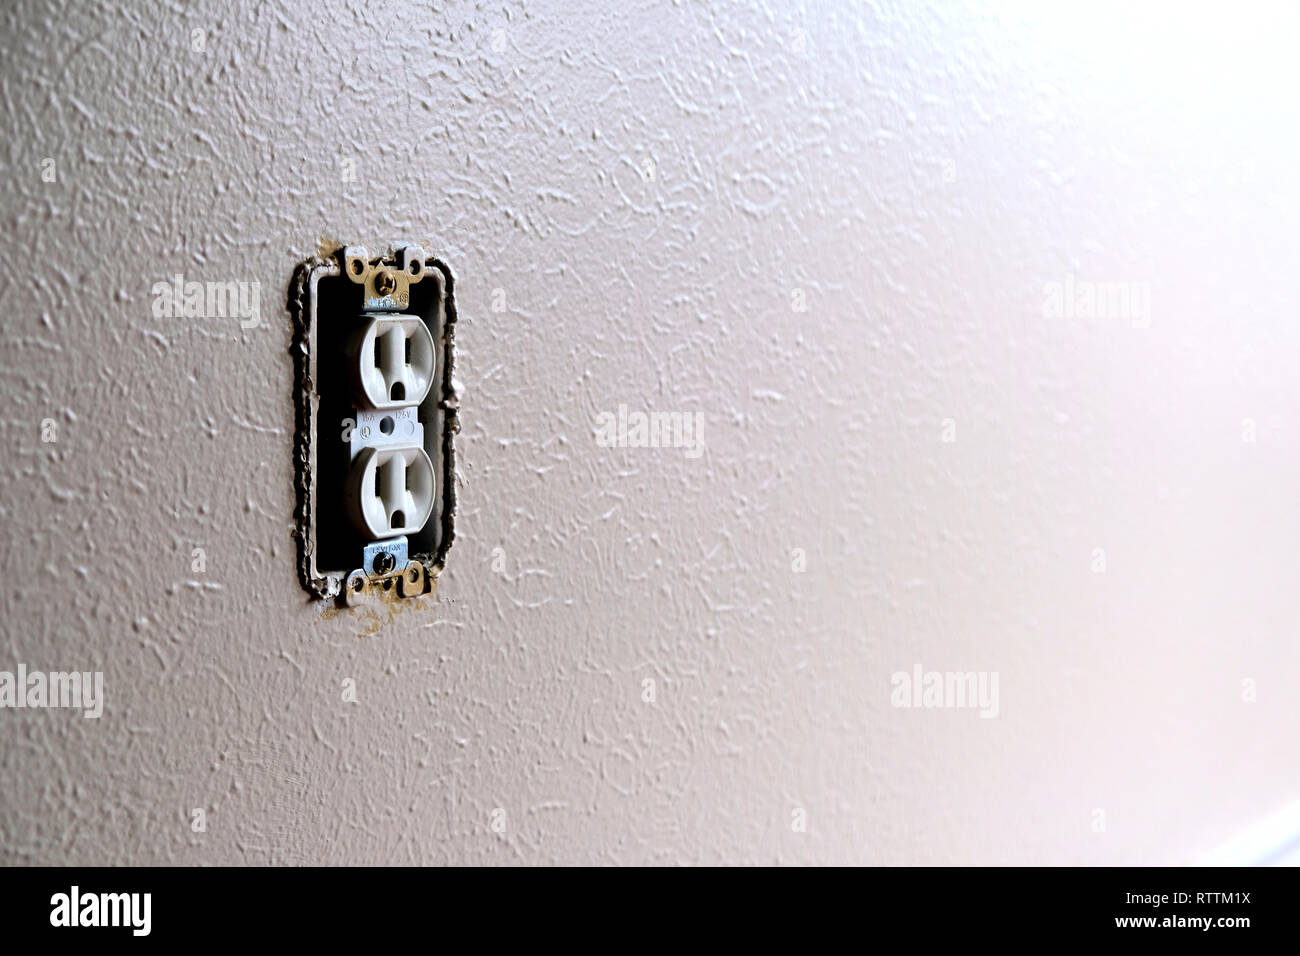 Interior unprotected wall socket; American electrical outlet missing a wall plate. - Stock Image